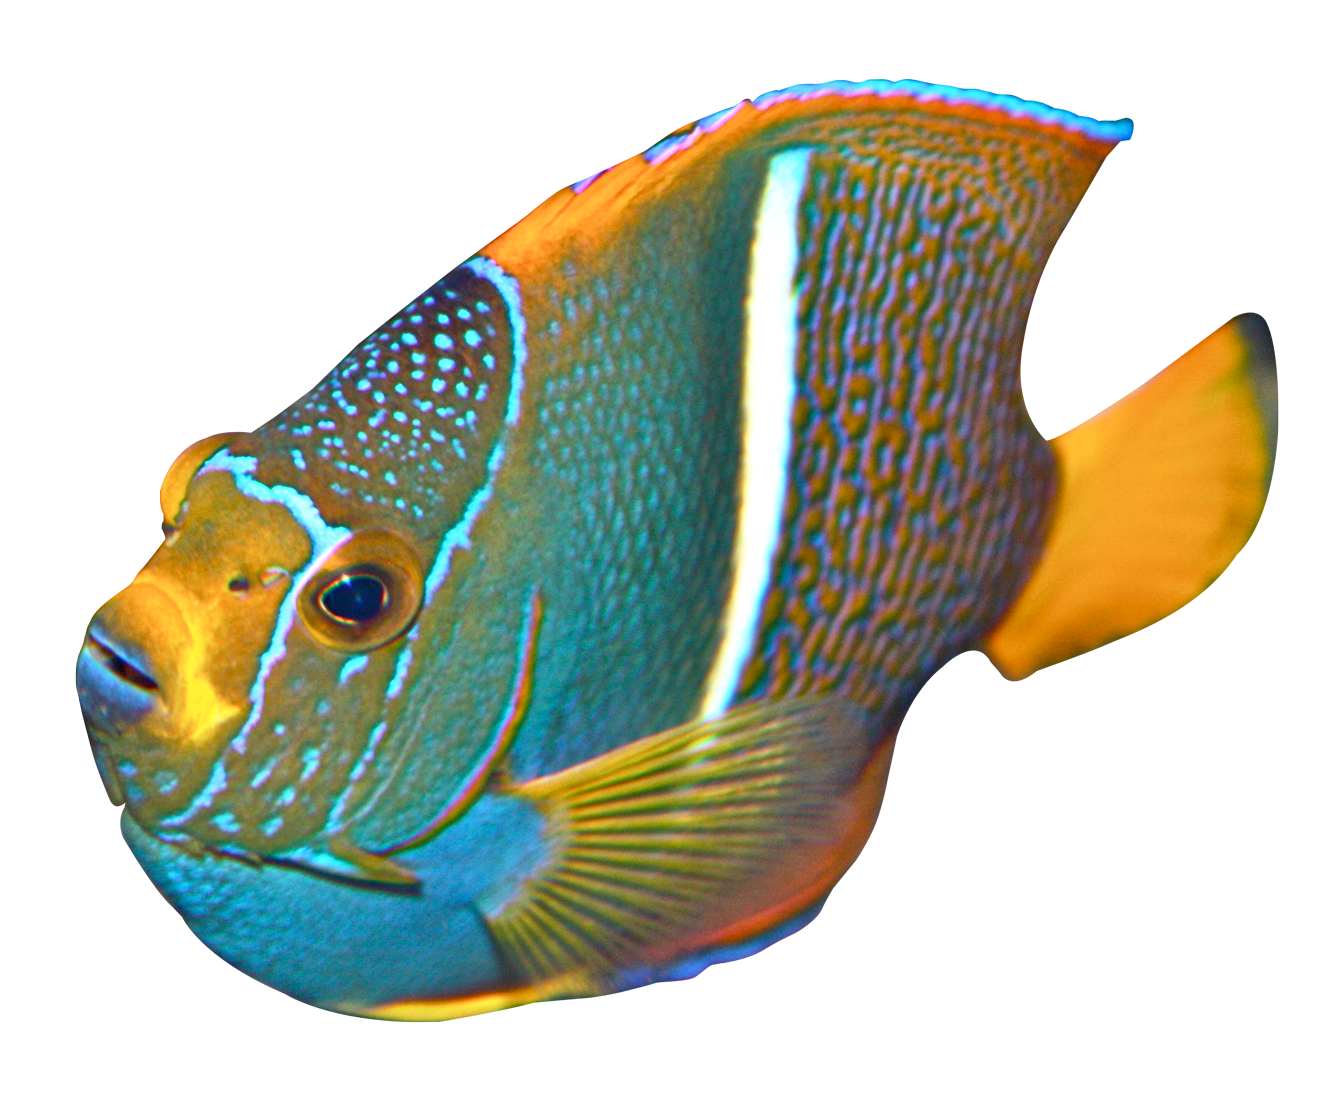 Clipart angel fish vector library library Angelfish PNG Image - PurePNG | Free transparent CC0 PNG Image Library vector library library